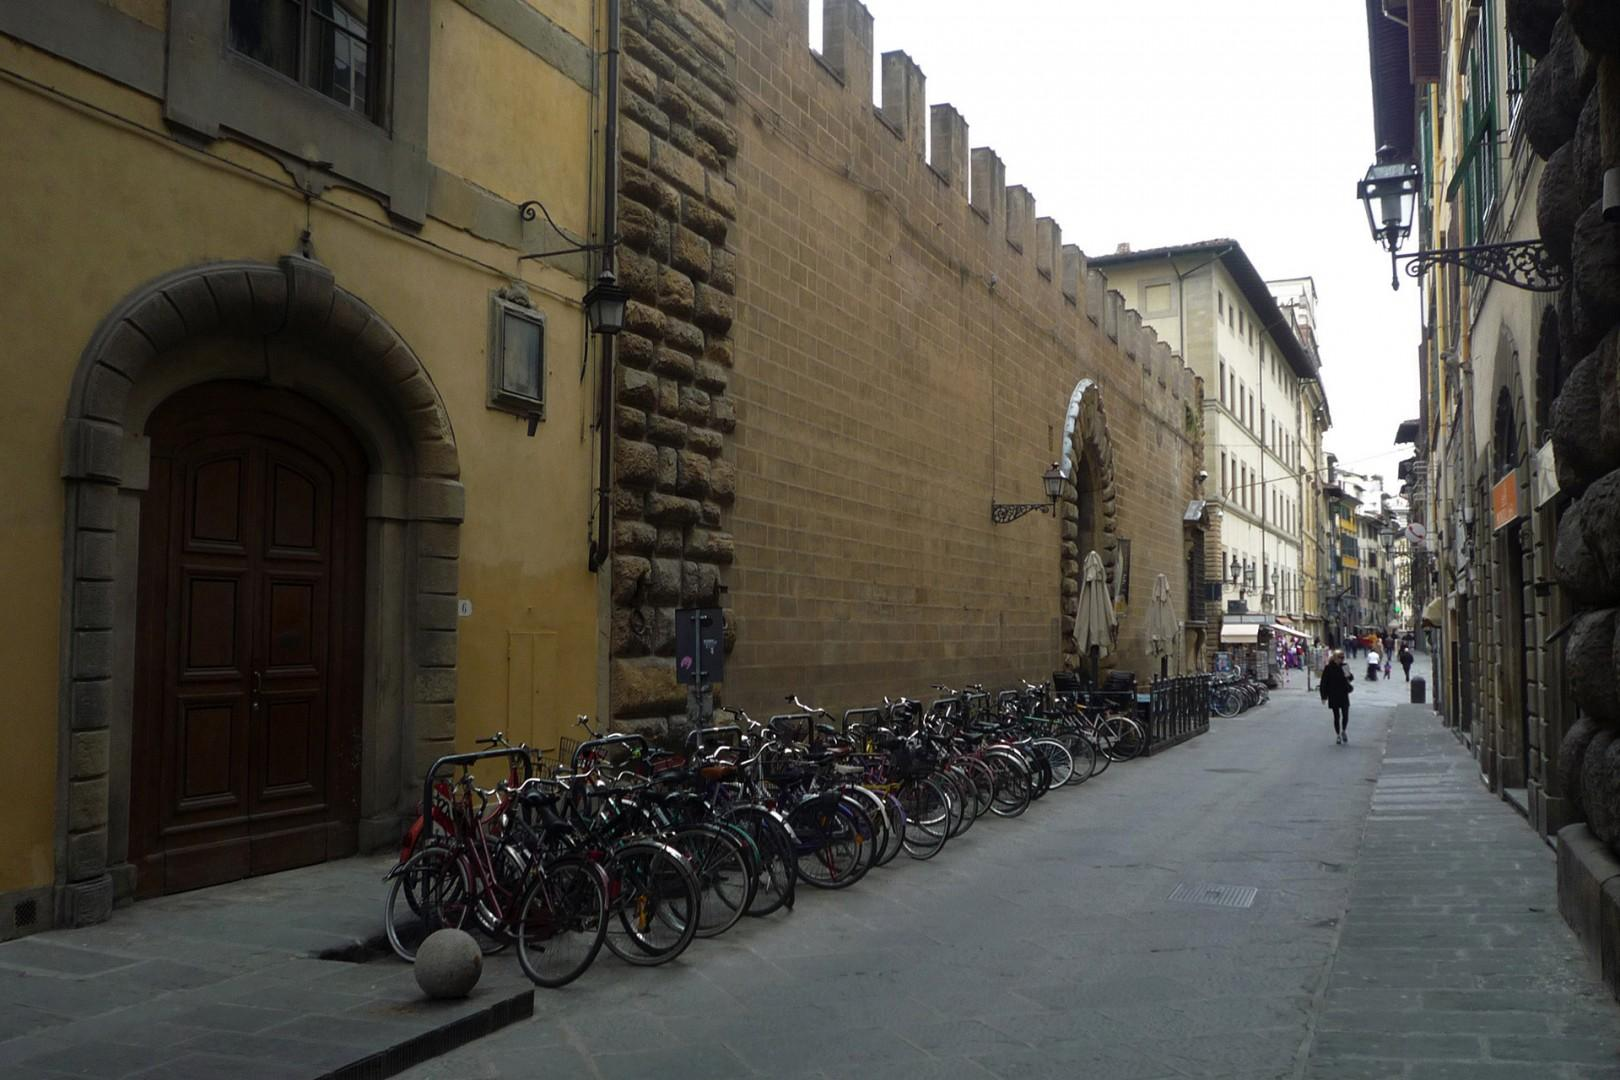 This is the facade of the Riccardi Library built in the 1600's on Via dei Ginori.